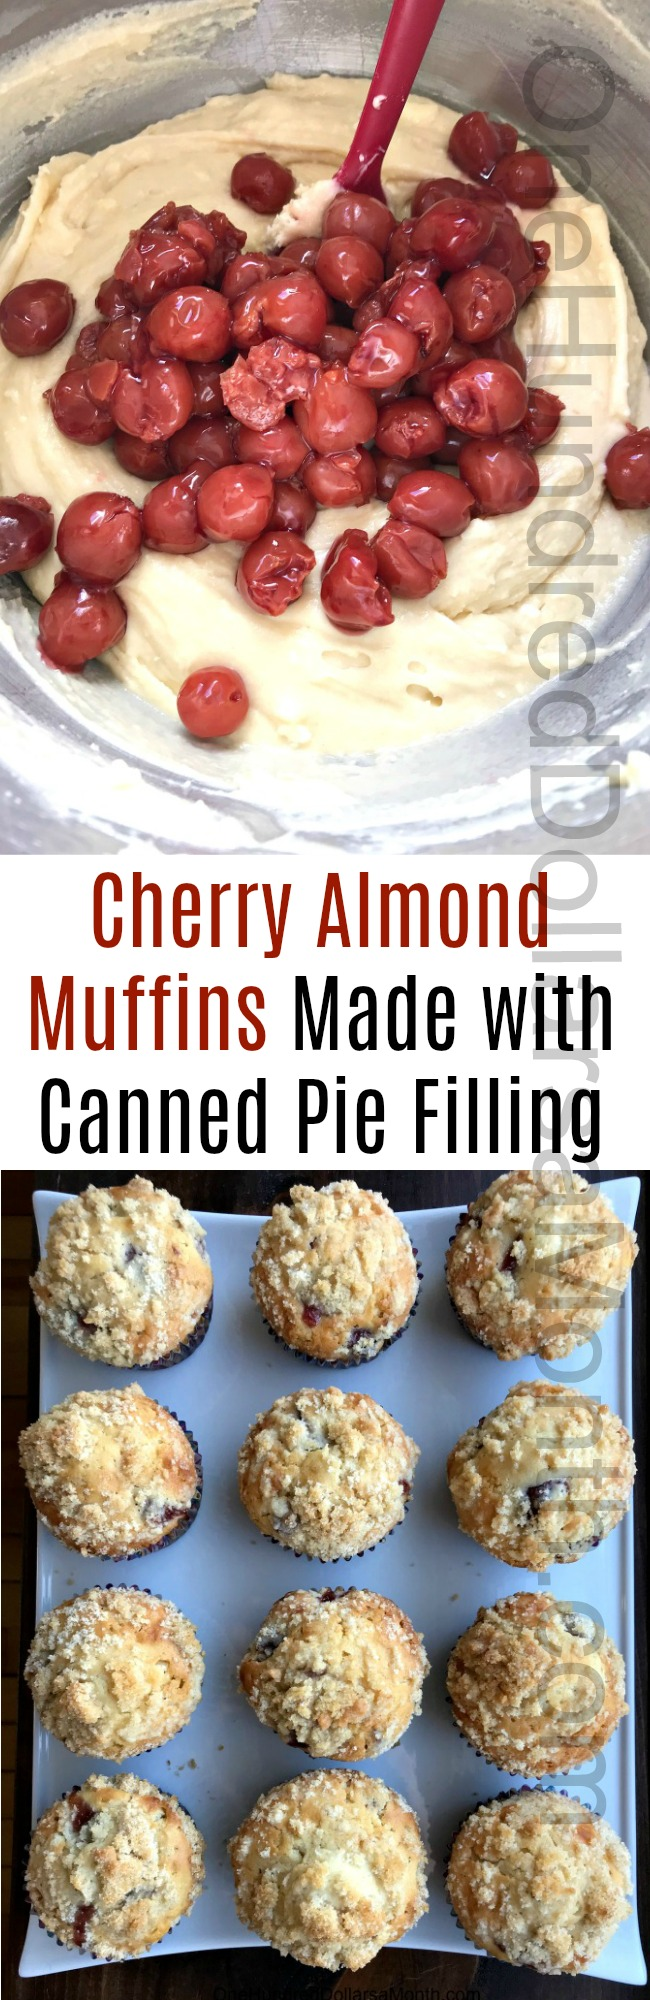 A Recipe for Cherry Almond Muffins Made with Canned Pie Filling … Sort Of